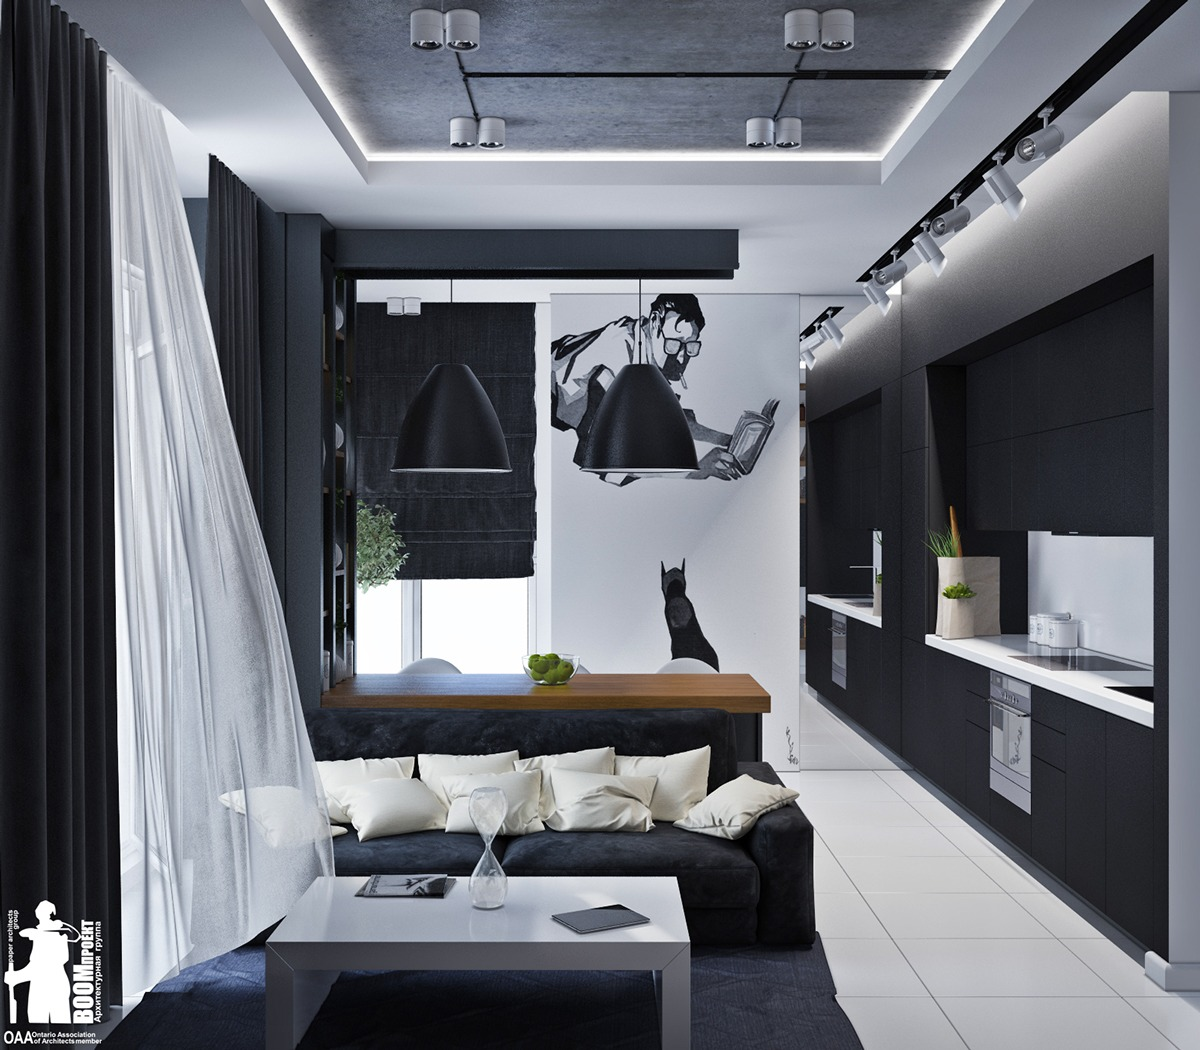 Artistic Wall Decal Ideas - Artistic apartments with monochromatic color schemes